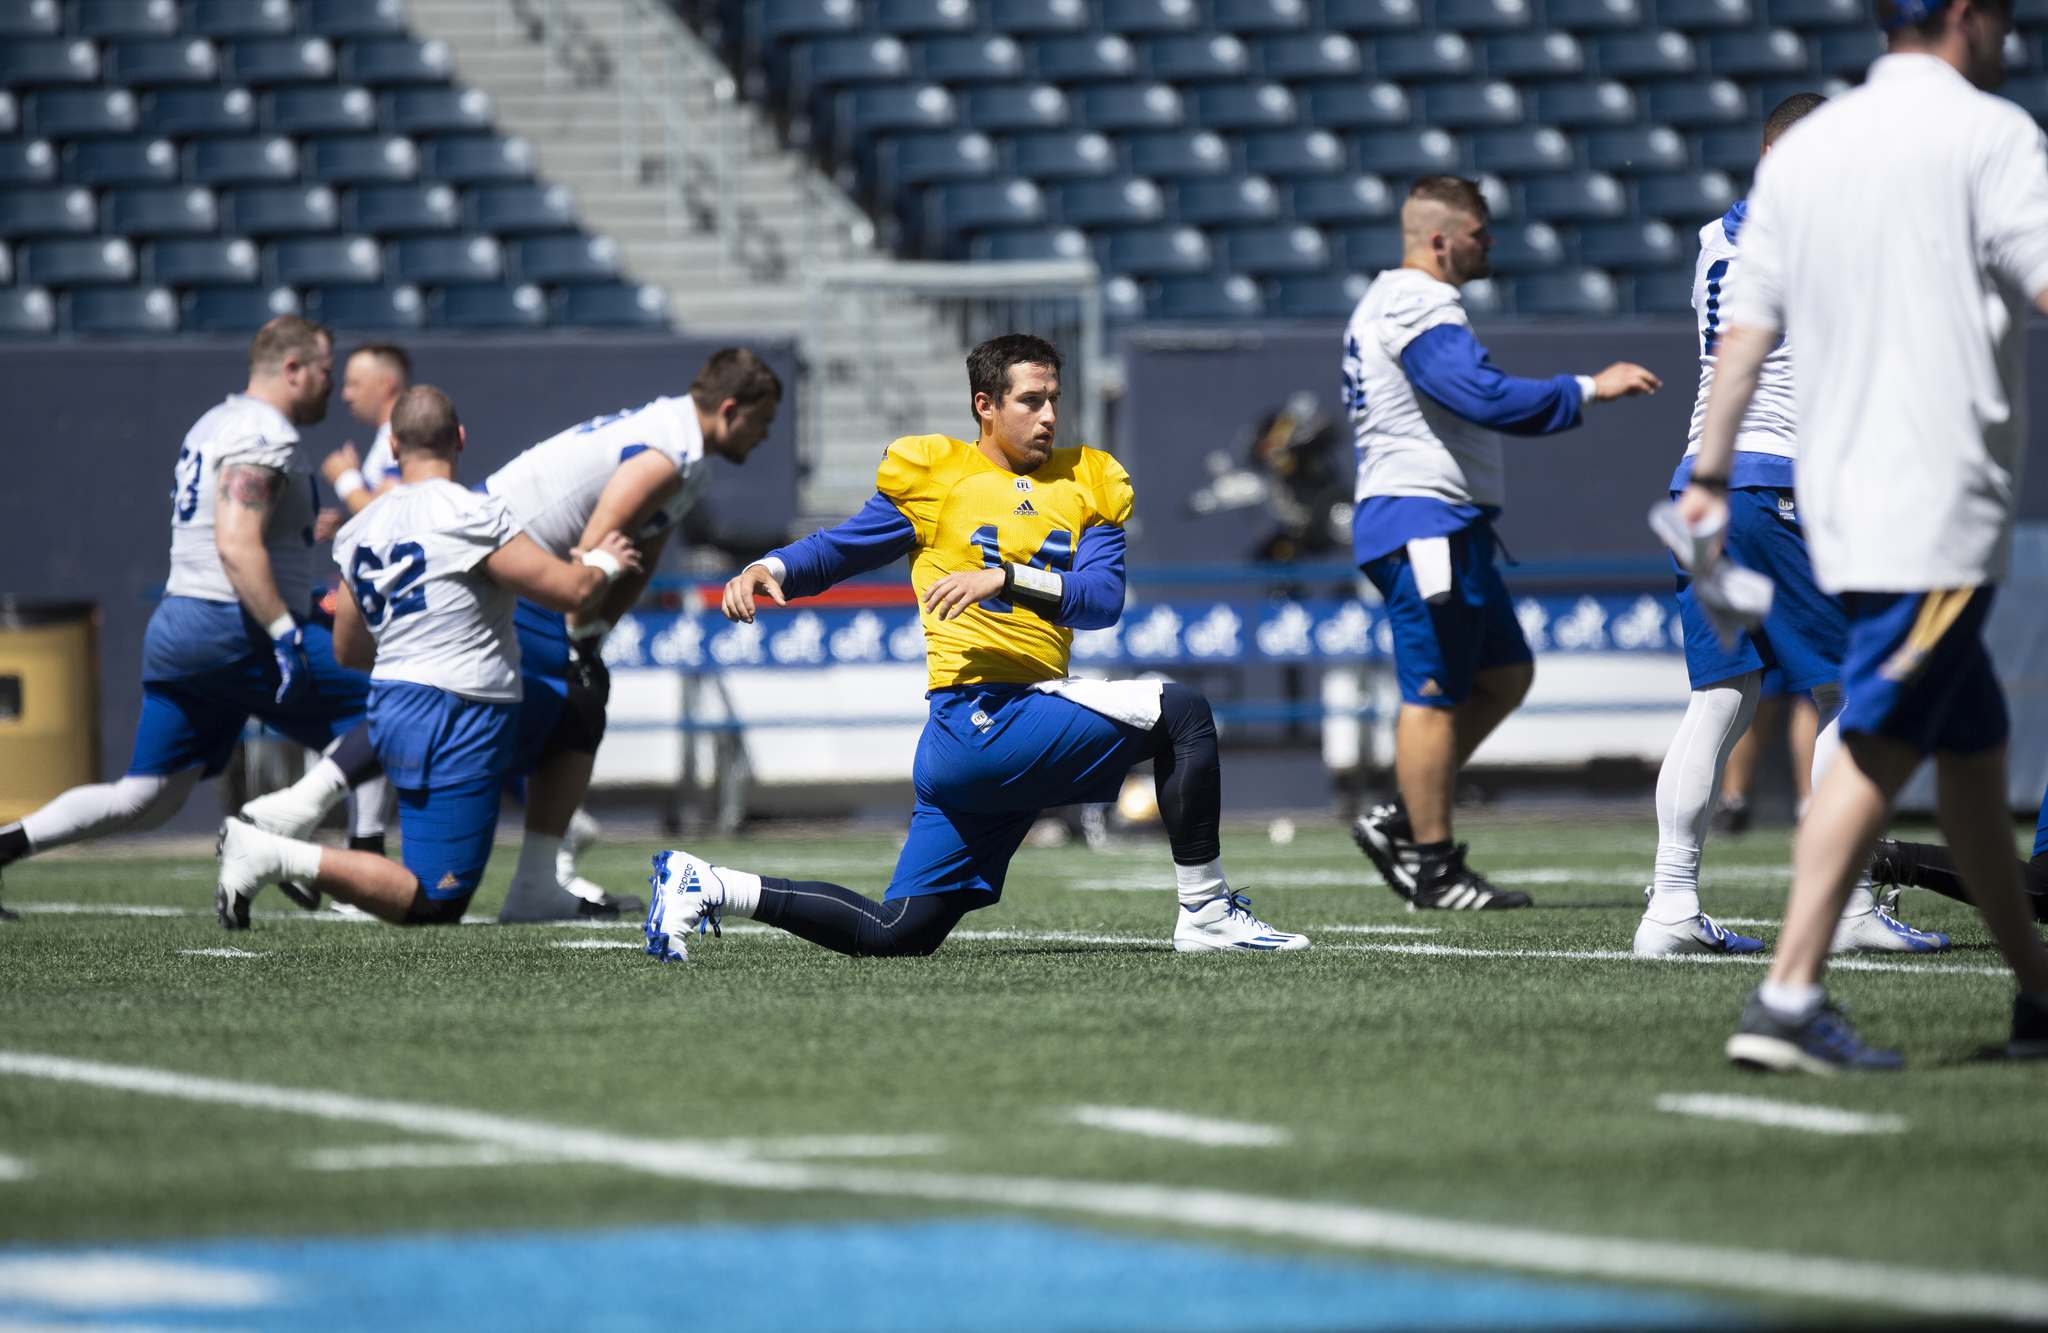 New Blue Bombers quarterback Mitchell Gale practised with his sixth CFL team Monday at Investors Group Field since arriving in the league as a free agent with the Toronto Argonauts in 2013. (ANDREW RYAN / WINNIPEG FREE PRESS)</p>